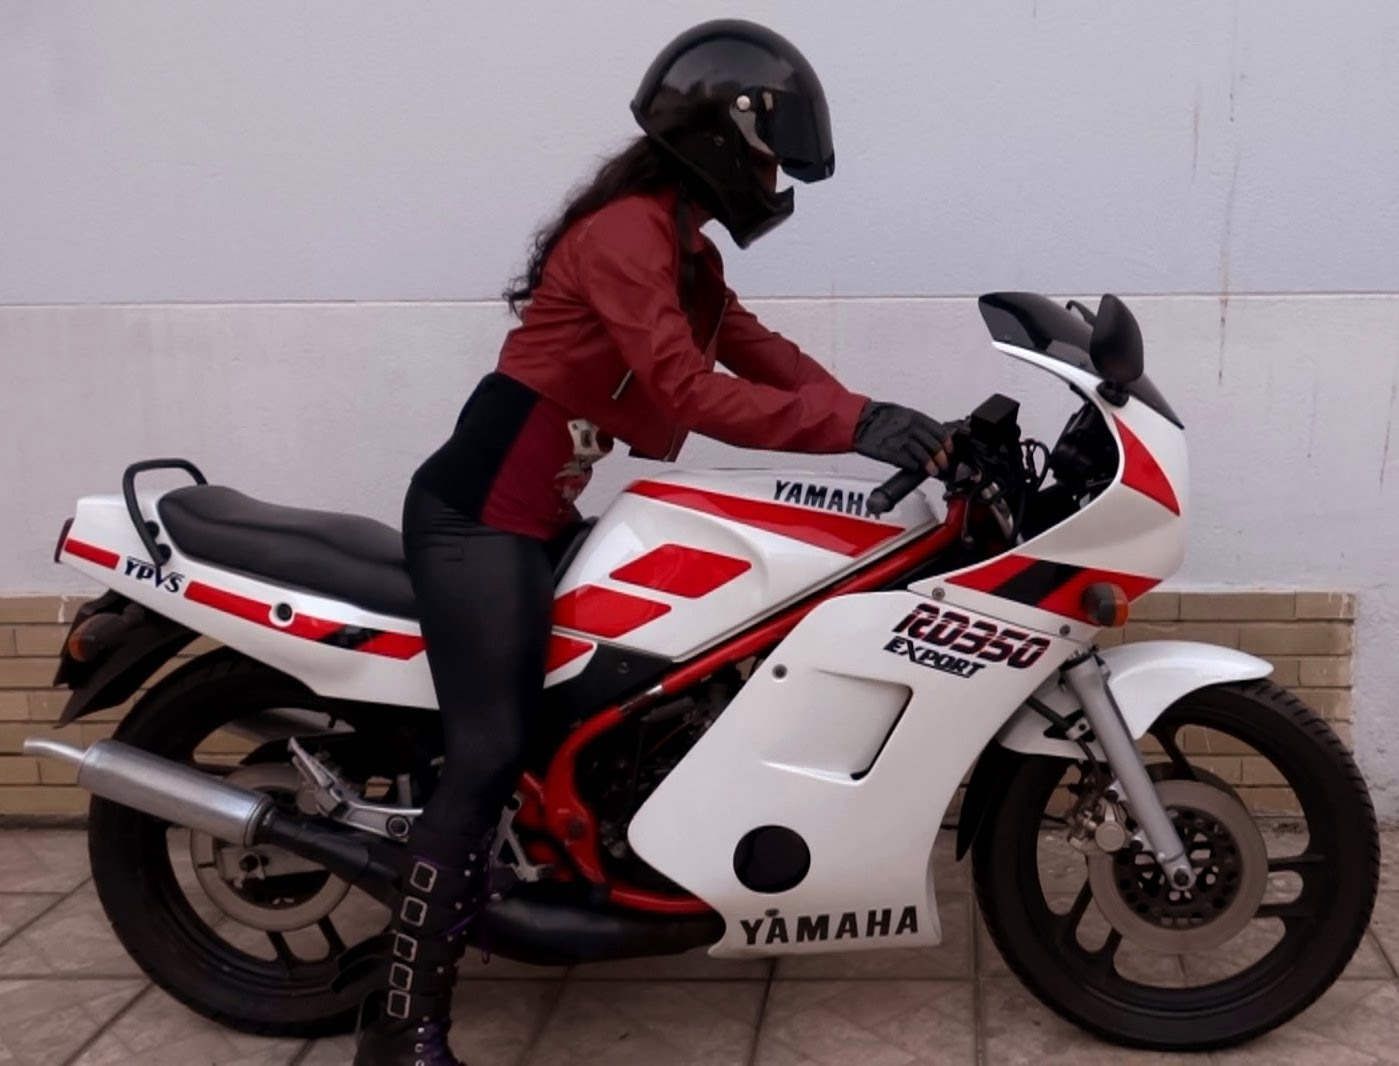 1987 Yamaha RD 500 LC: pics, specs and information